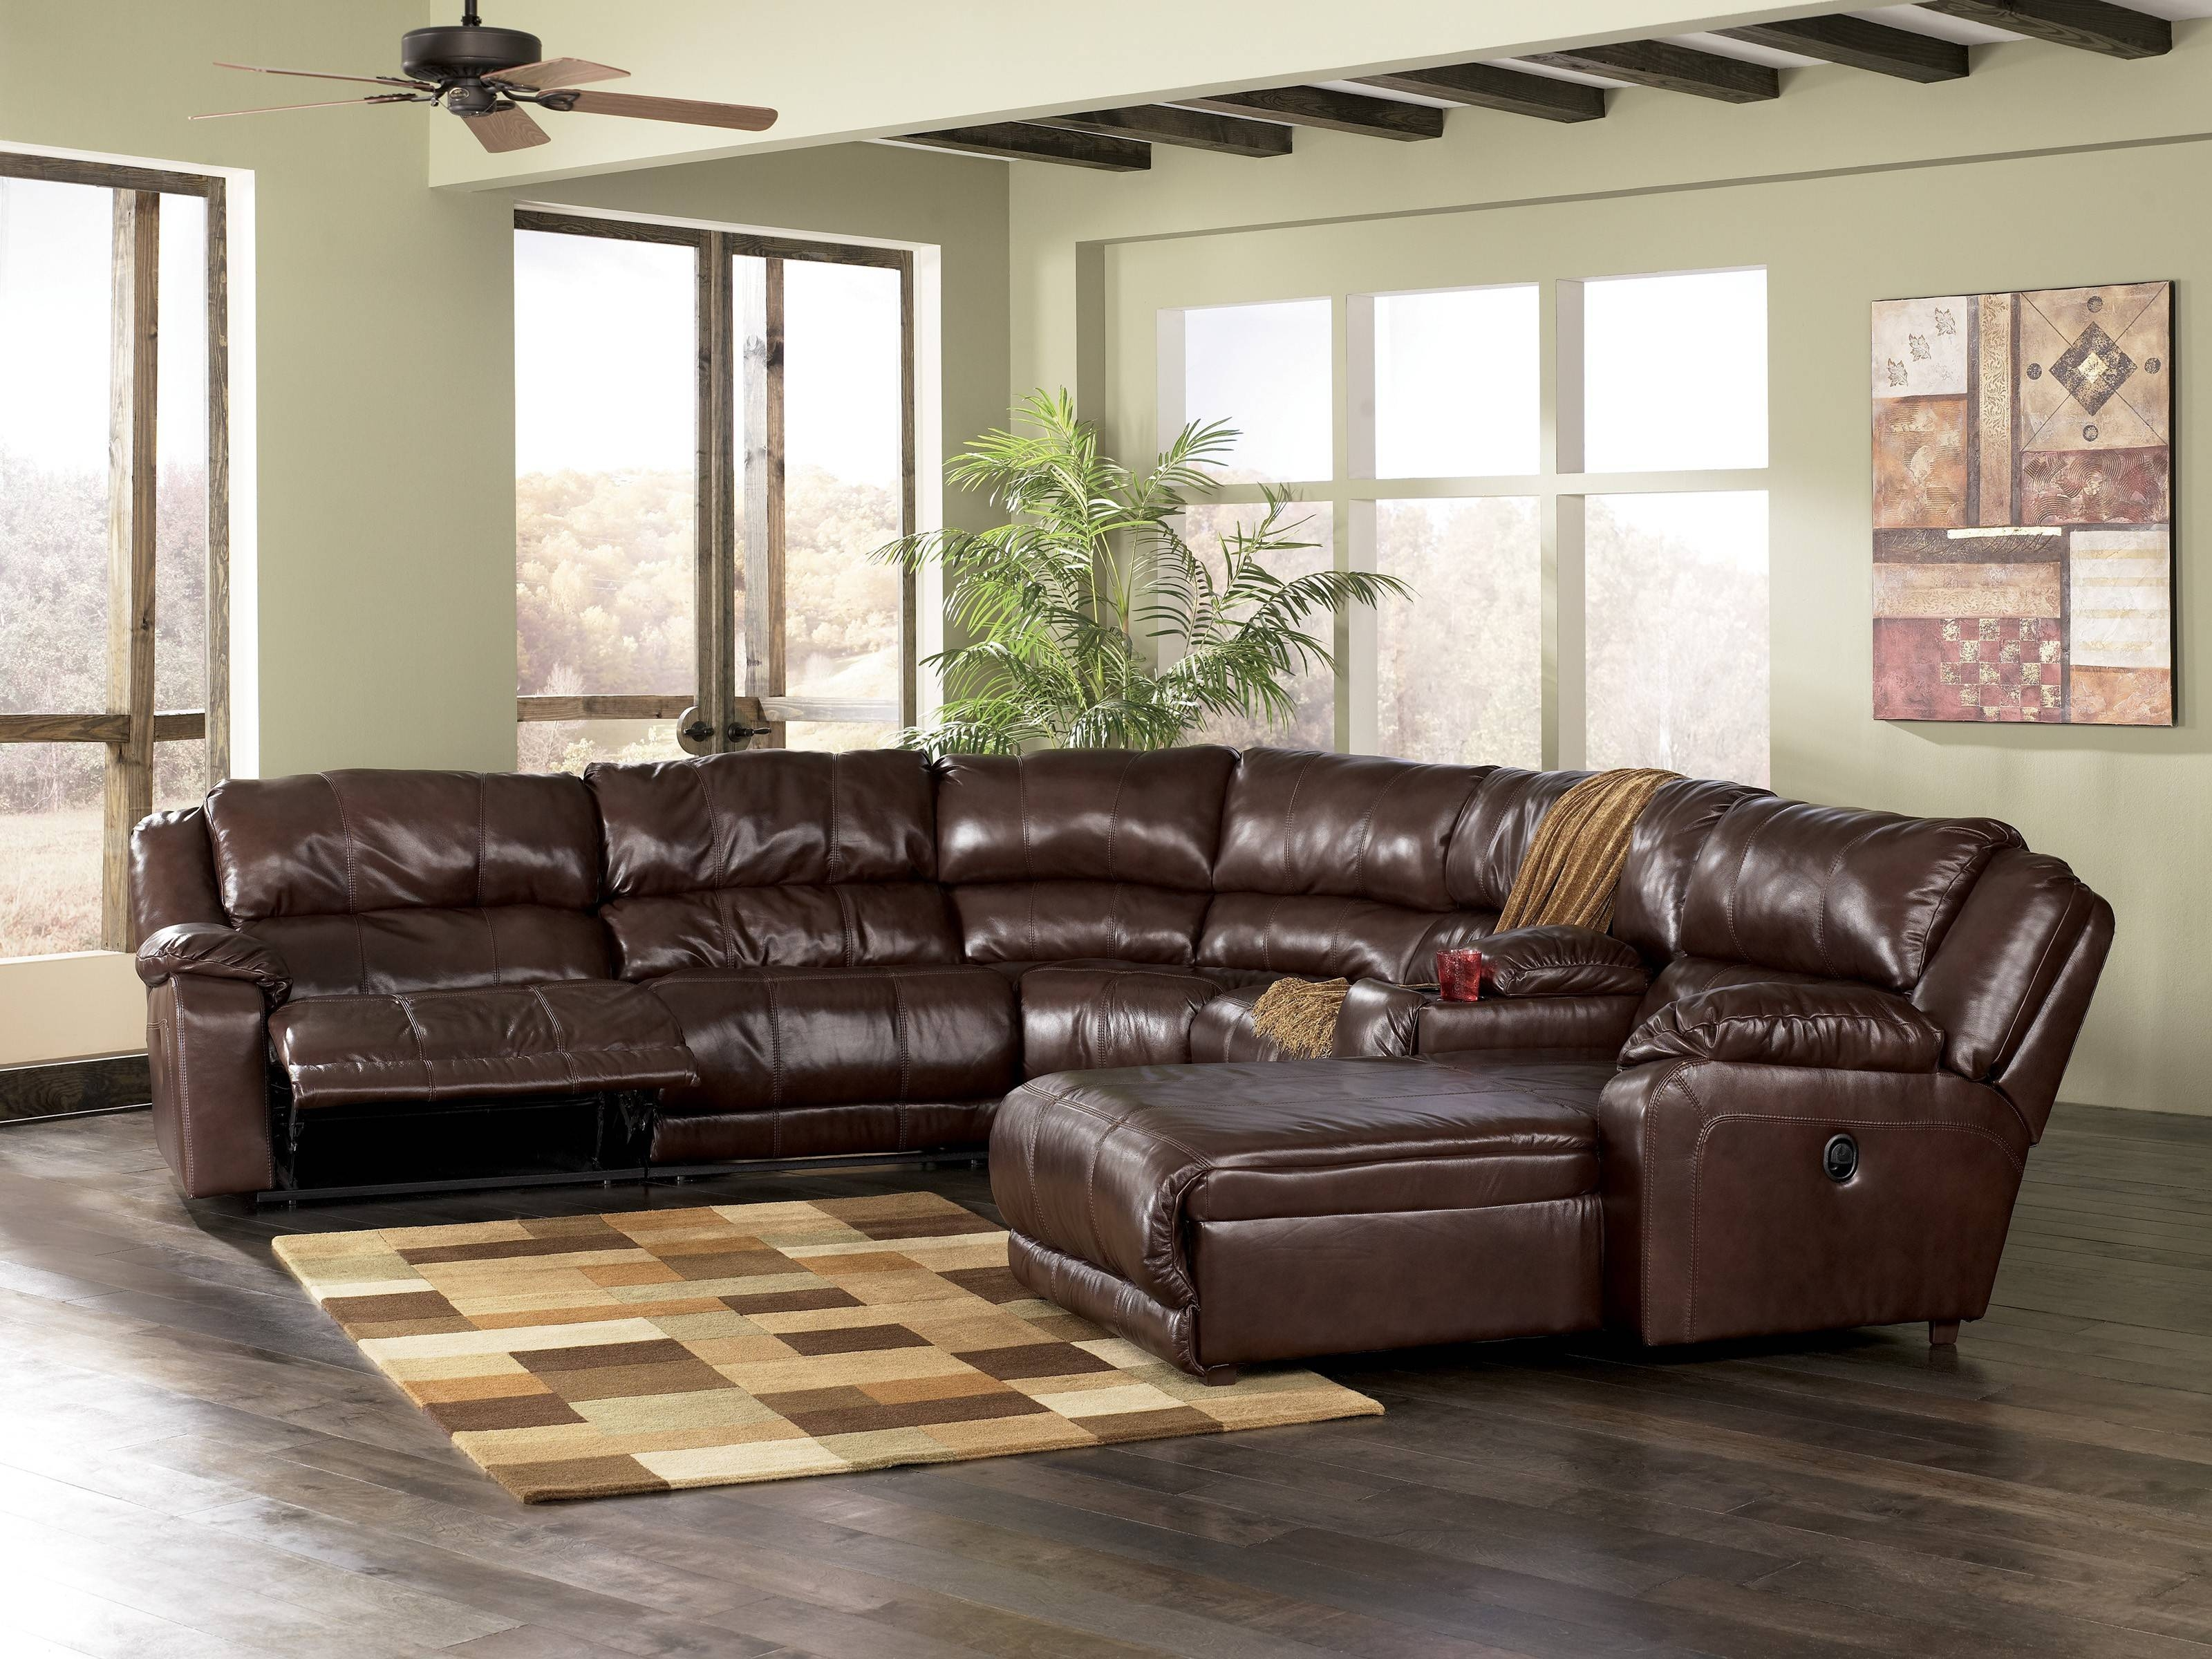 Furniture: Jcpenney Furniture | Cheap Loveseat | Sofas Under 300 Inside Jcpenney Sectional Sofas (View 12 of 15)